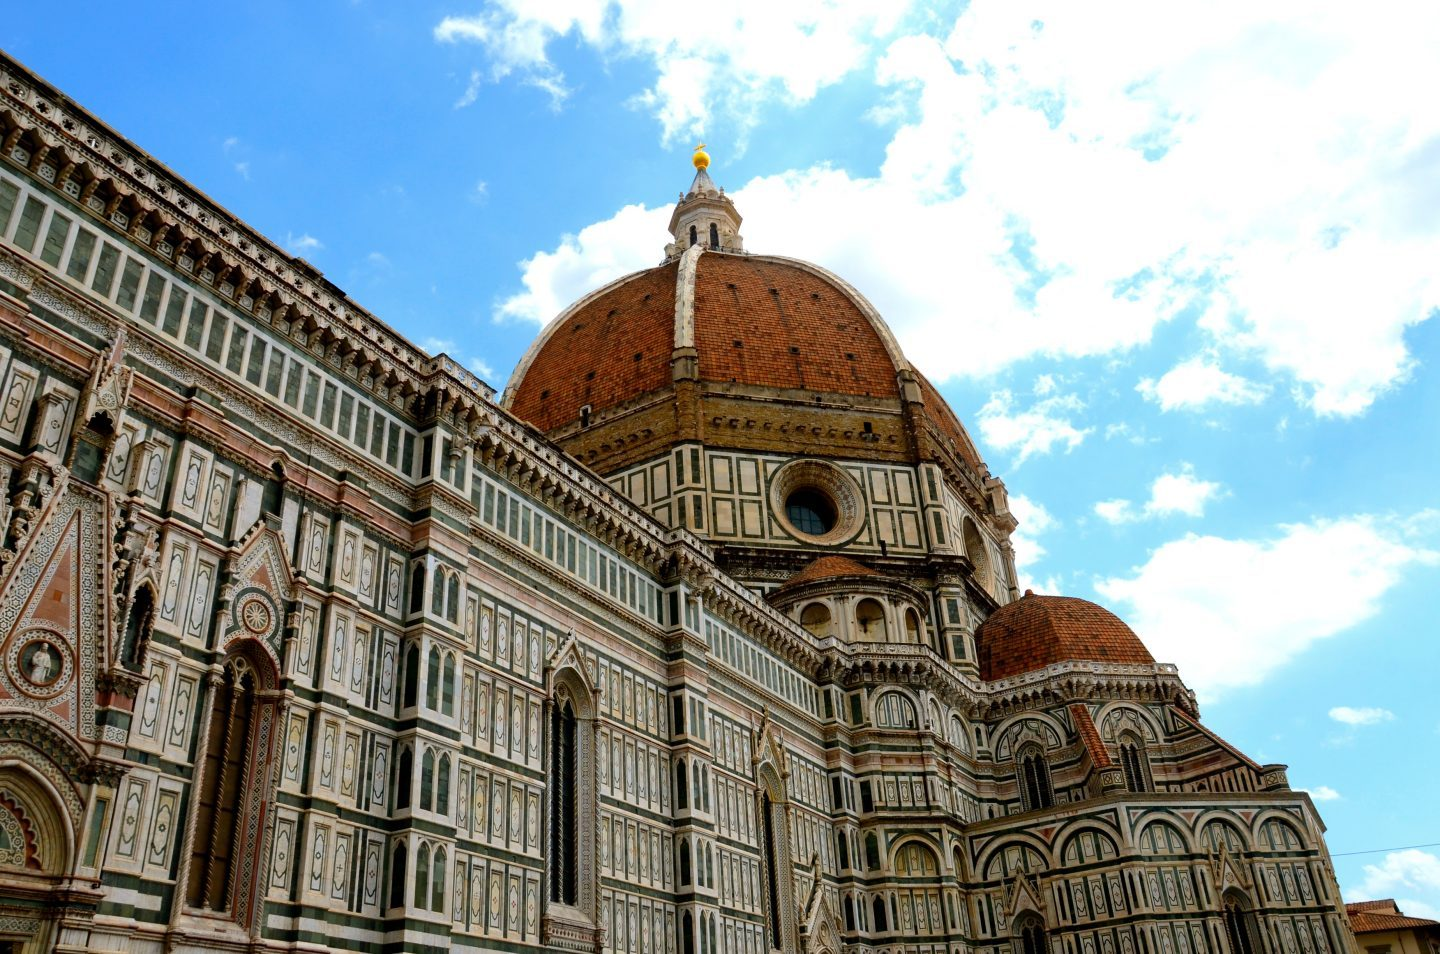 The duomo in Florence in Tuscany